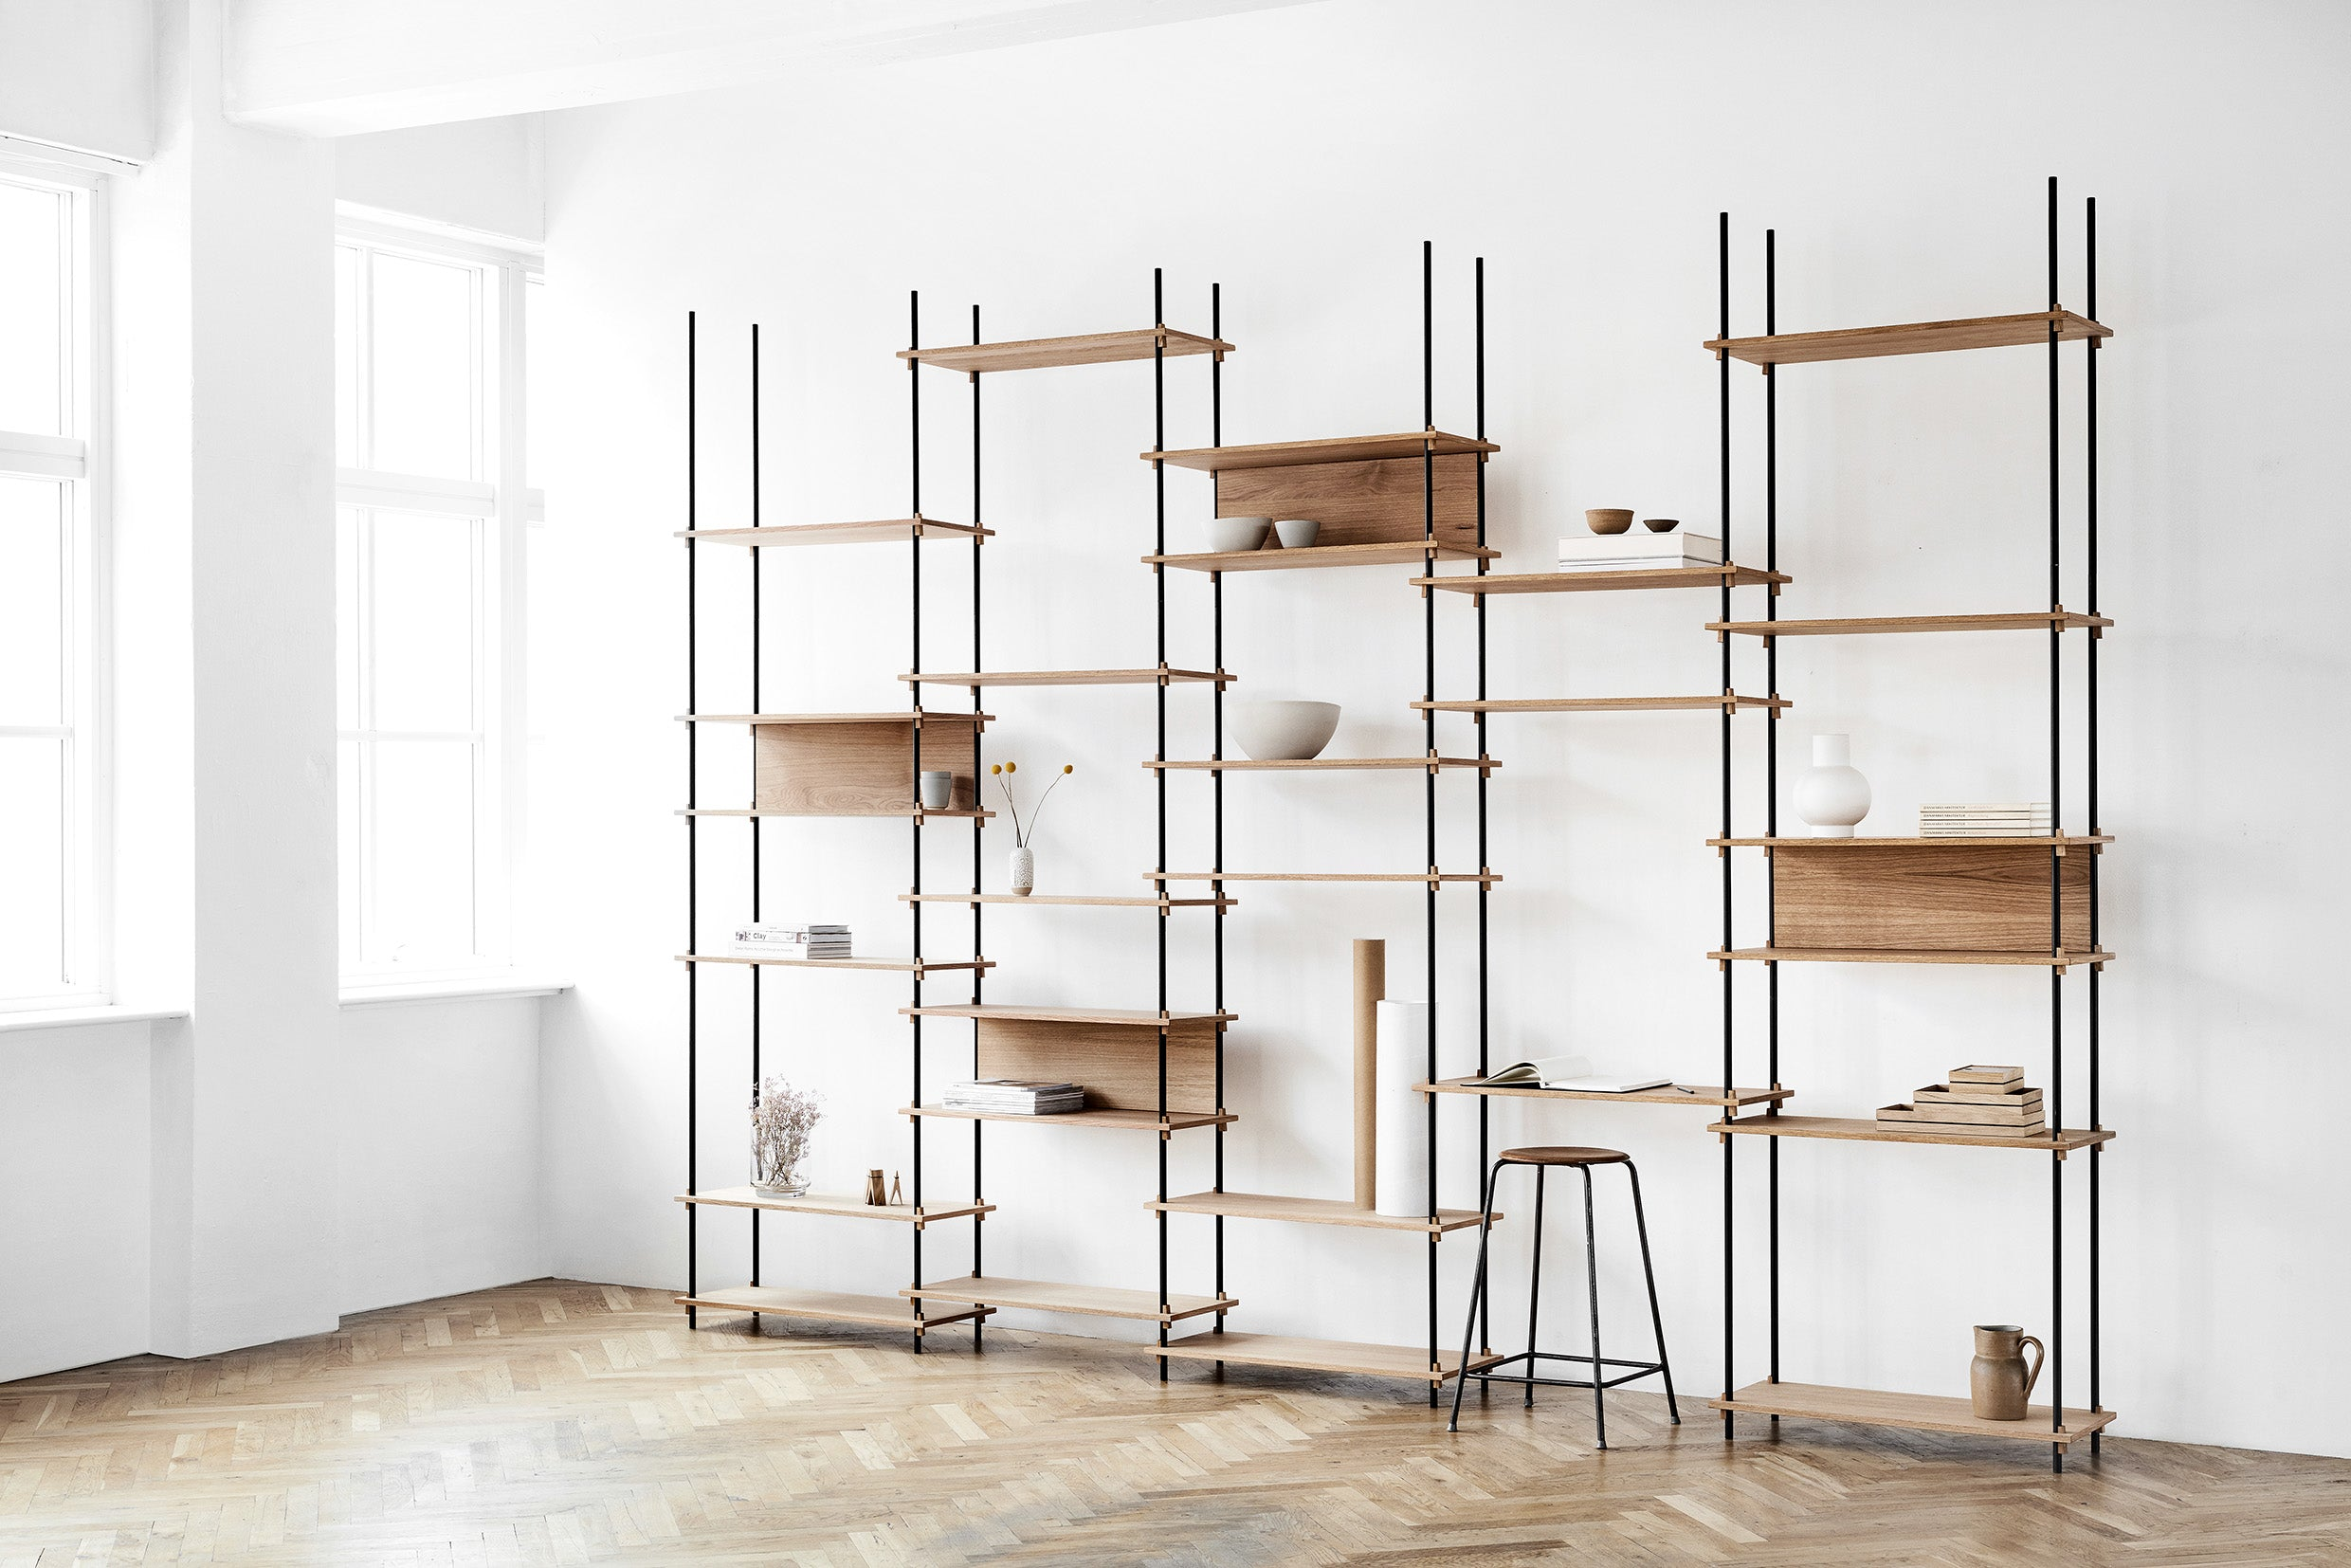 Shelving System - Low cabinet